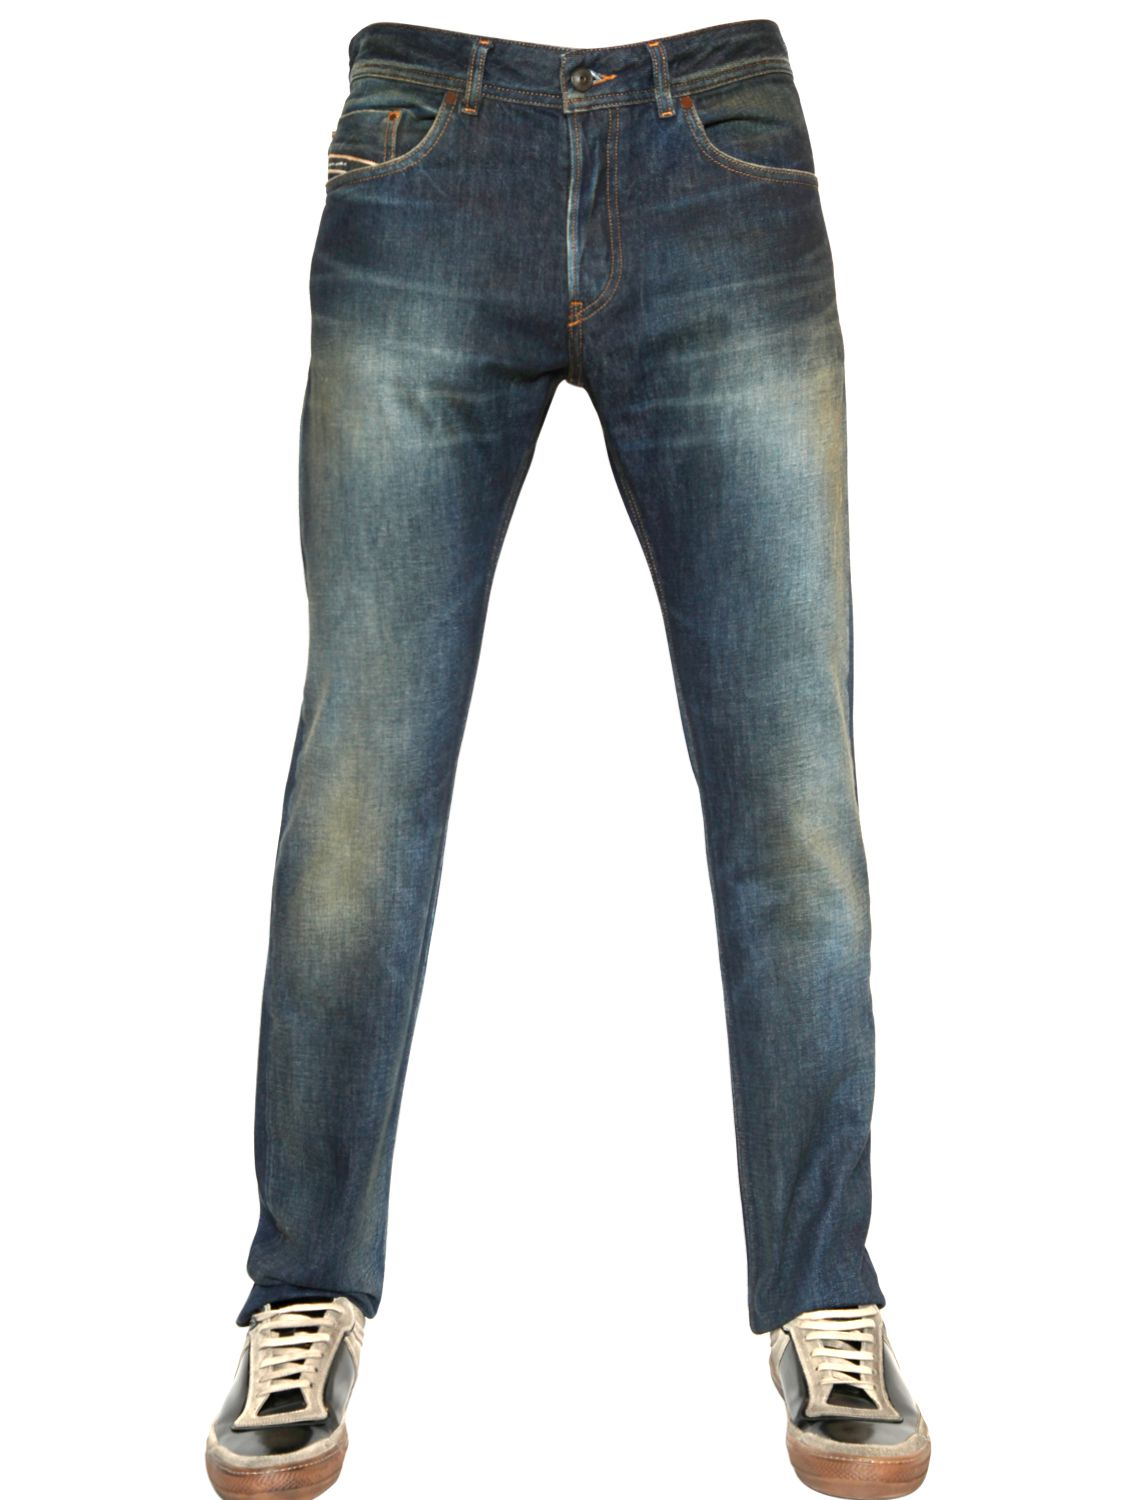 7744ccfd988f43 Details about Diesel Black Gold Excess-Selvedge 86M Jeans